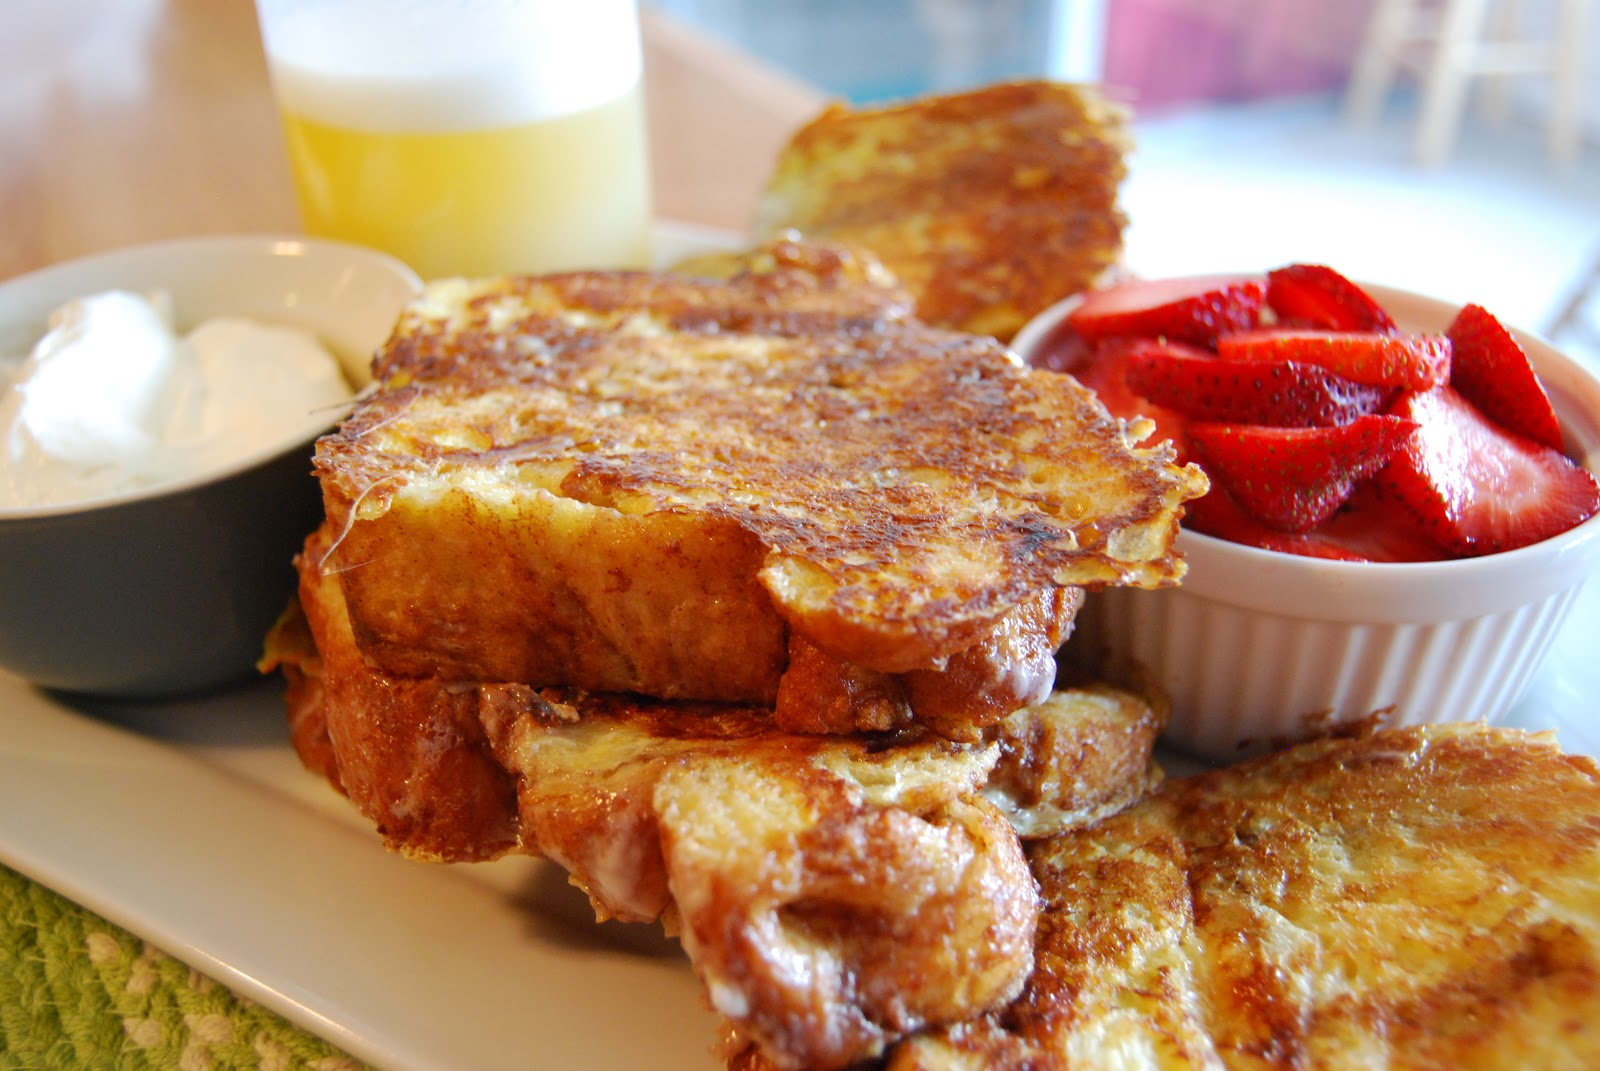 Make This Delicious French Toast, But Buying Kneaders Chunky Cinnamon  Bread Makes All The Difference We Also Love To Drizzle This With Homemade  Vanilla